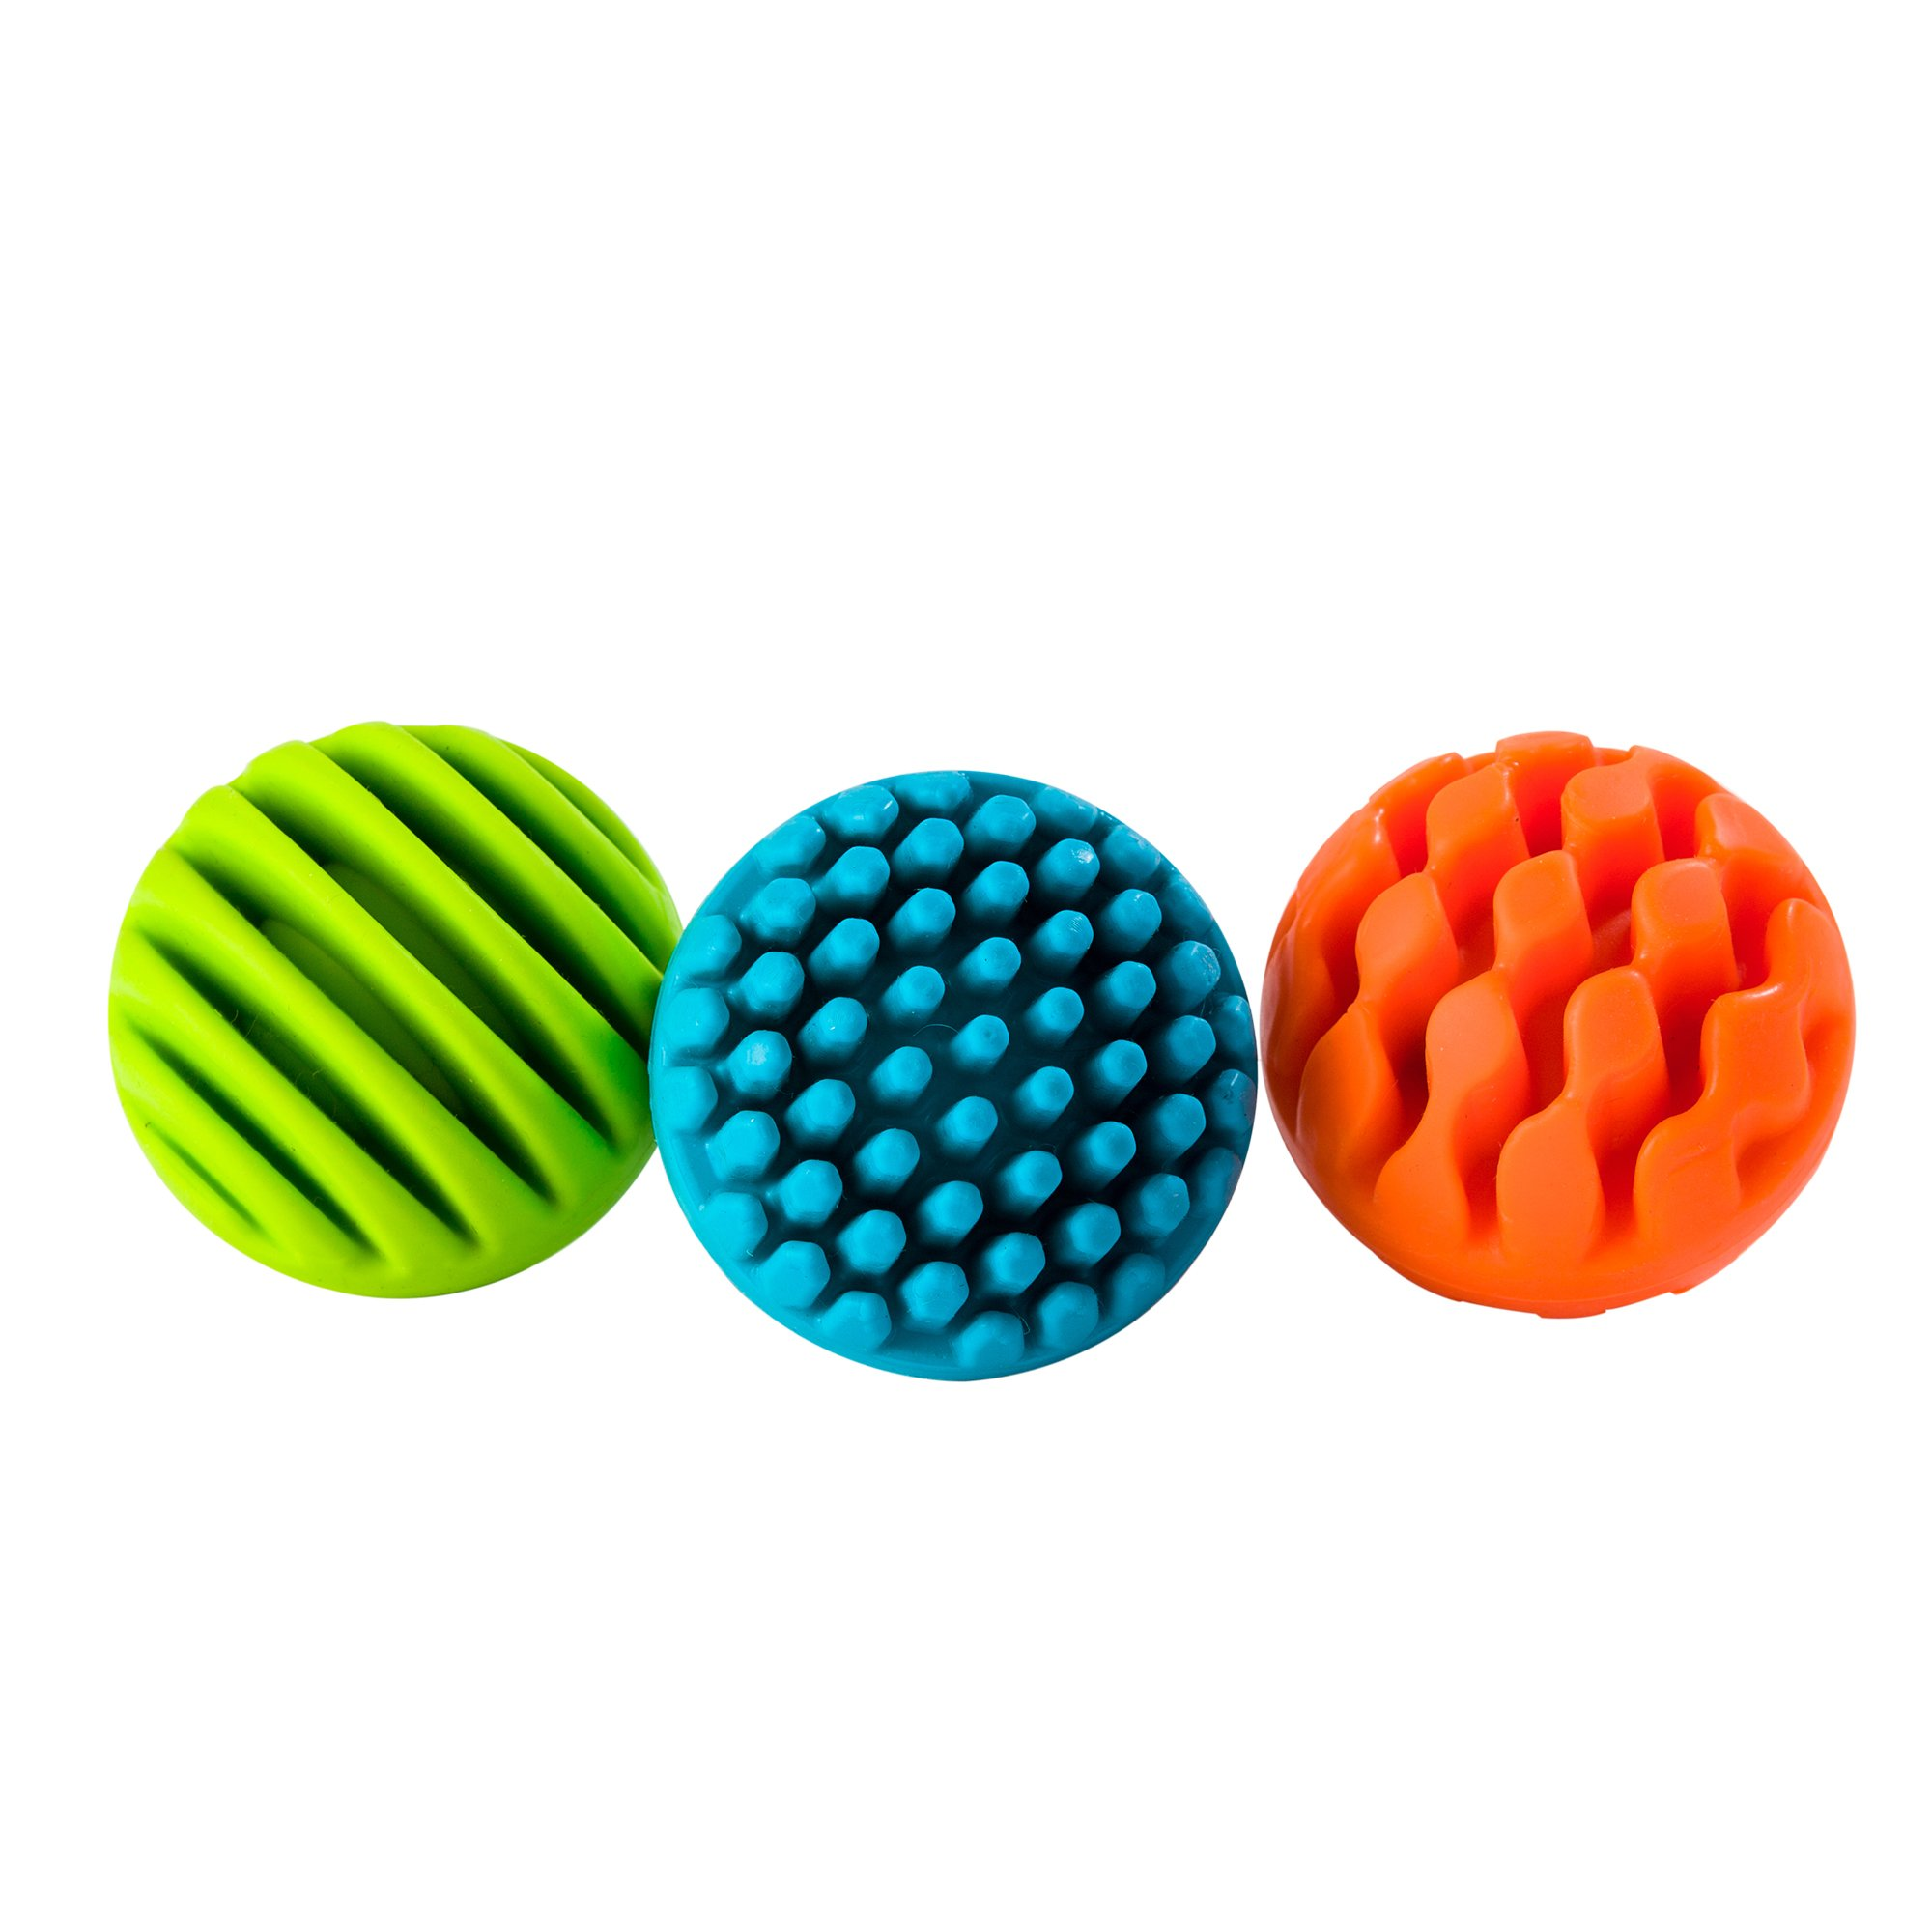 Fat Brain Toys Sensory Rollers by Fat Brain Toys